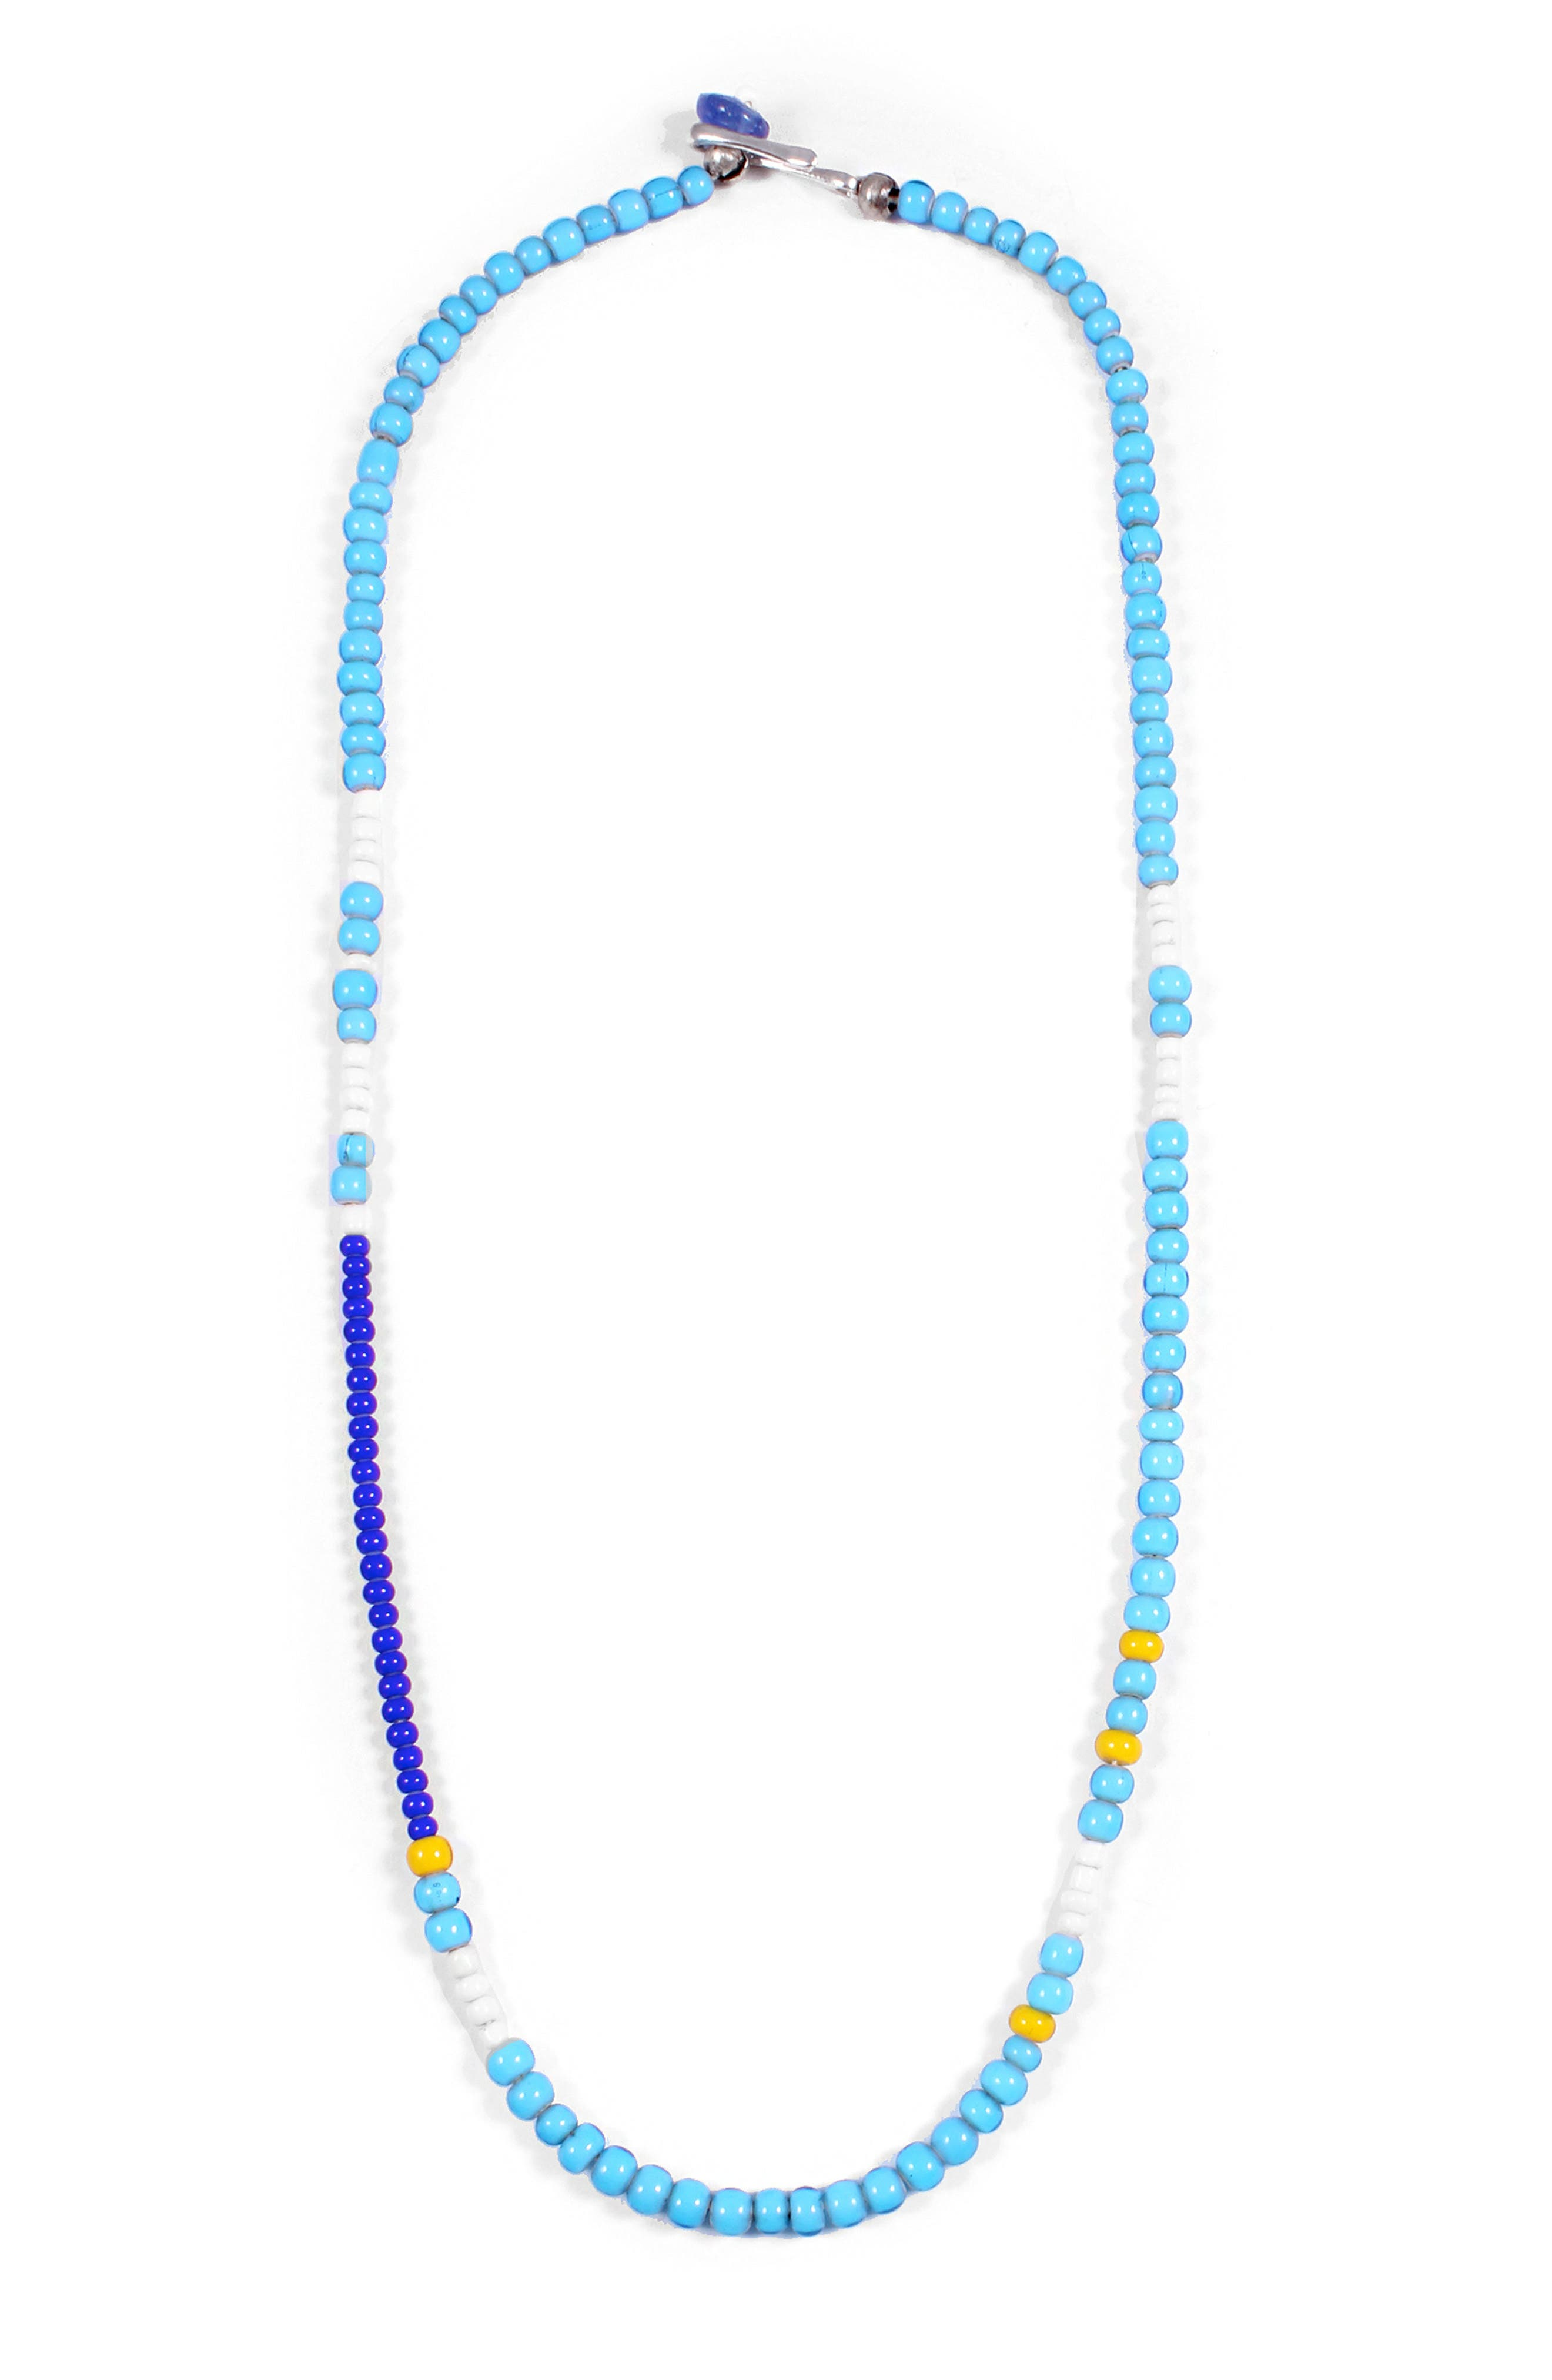 Calm Morse Necklace,                         Main,                         color, Blue/ White/ Yellow